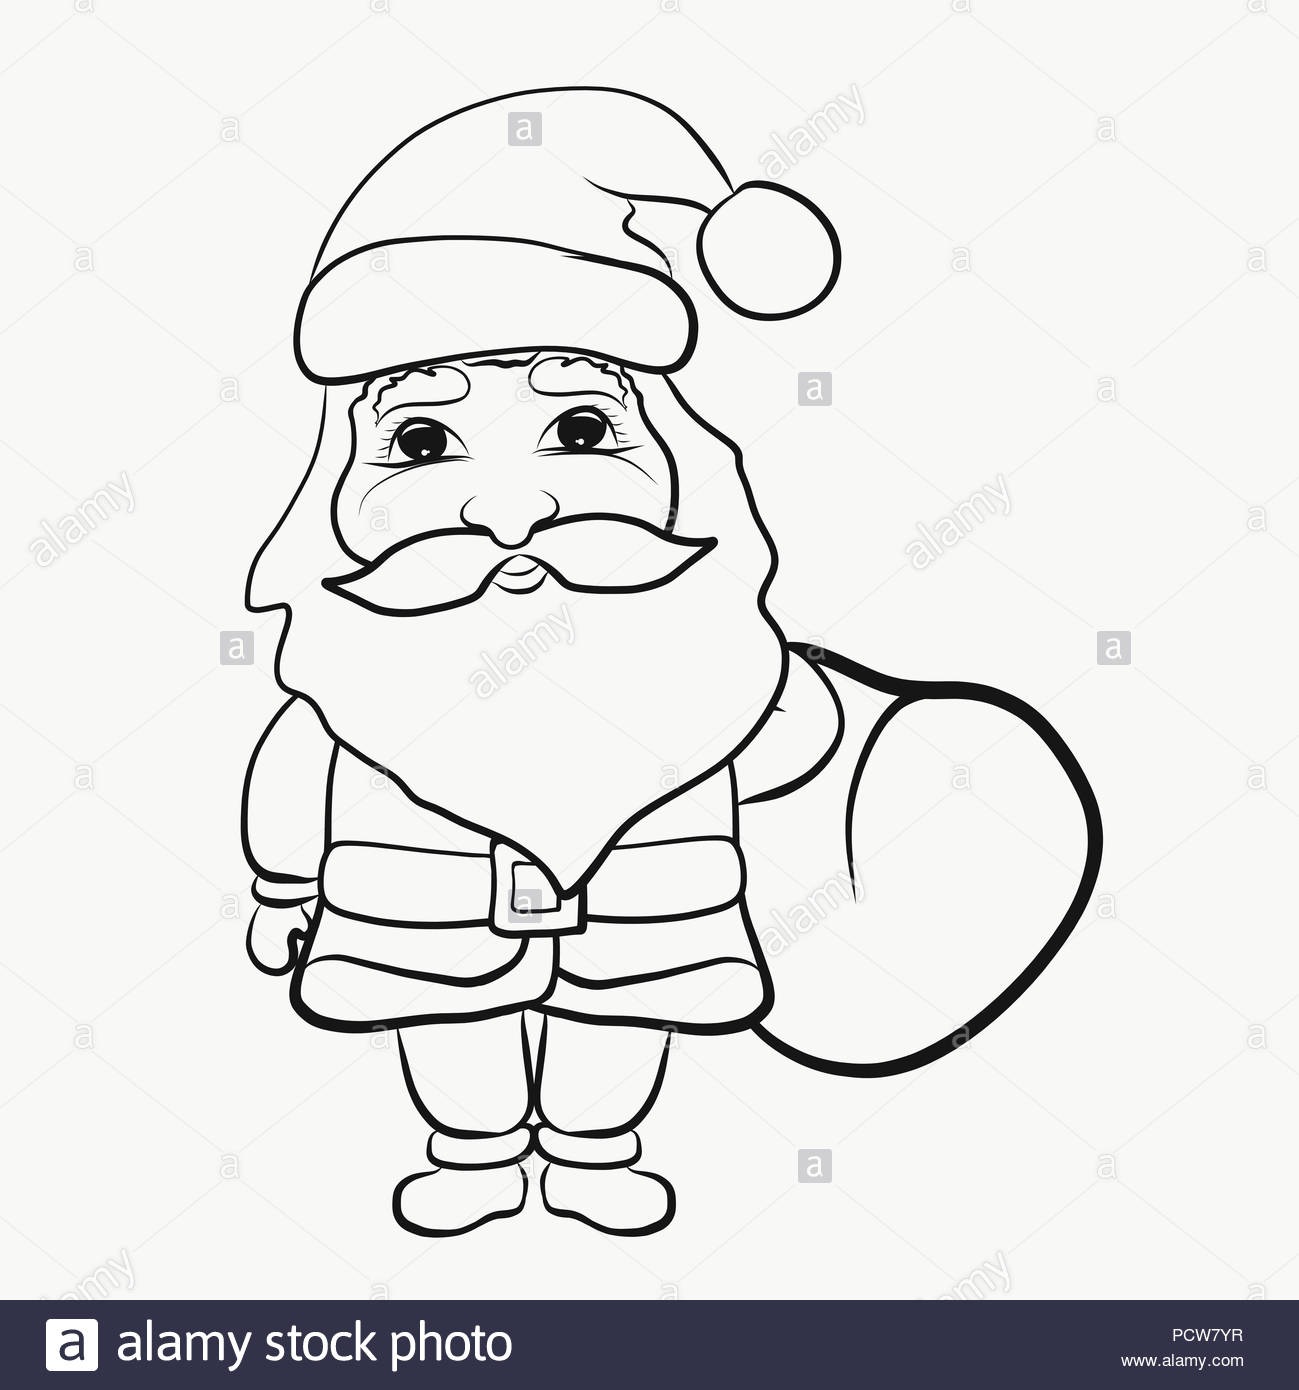 Santa Bag Coloring Page With Claus A Of Gifts Pages Stock Photo